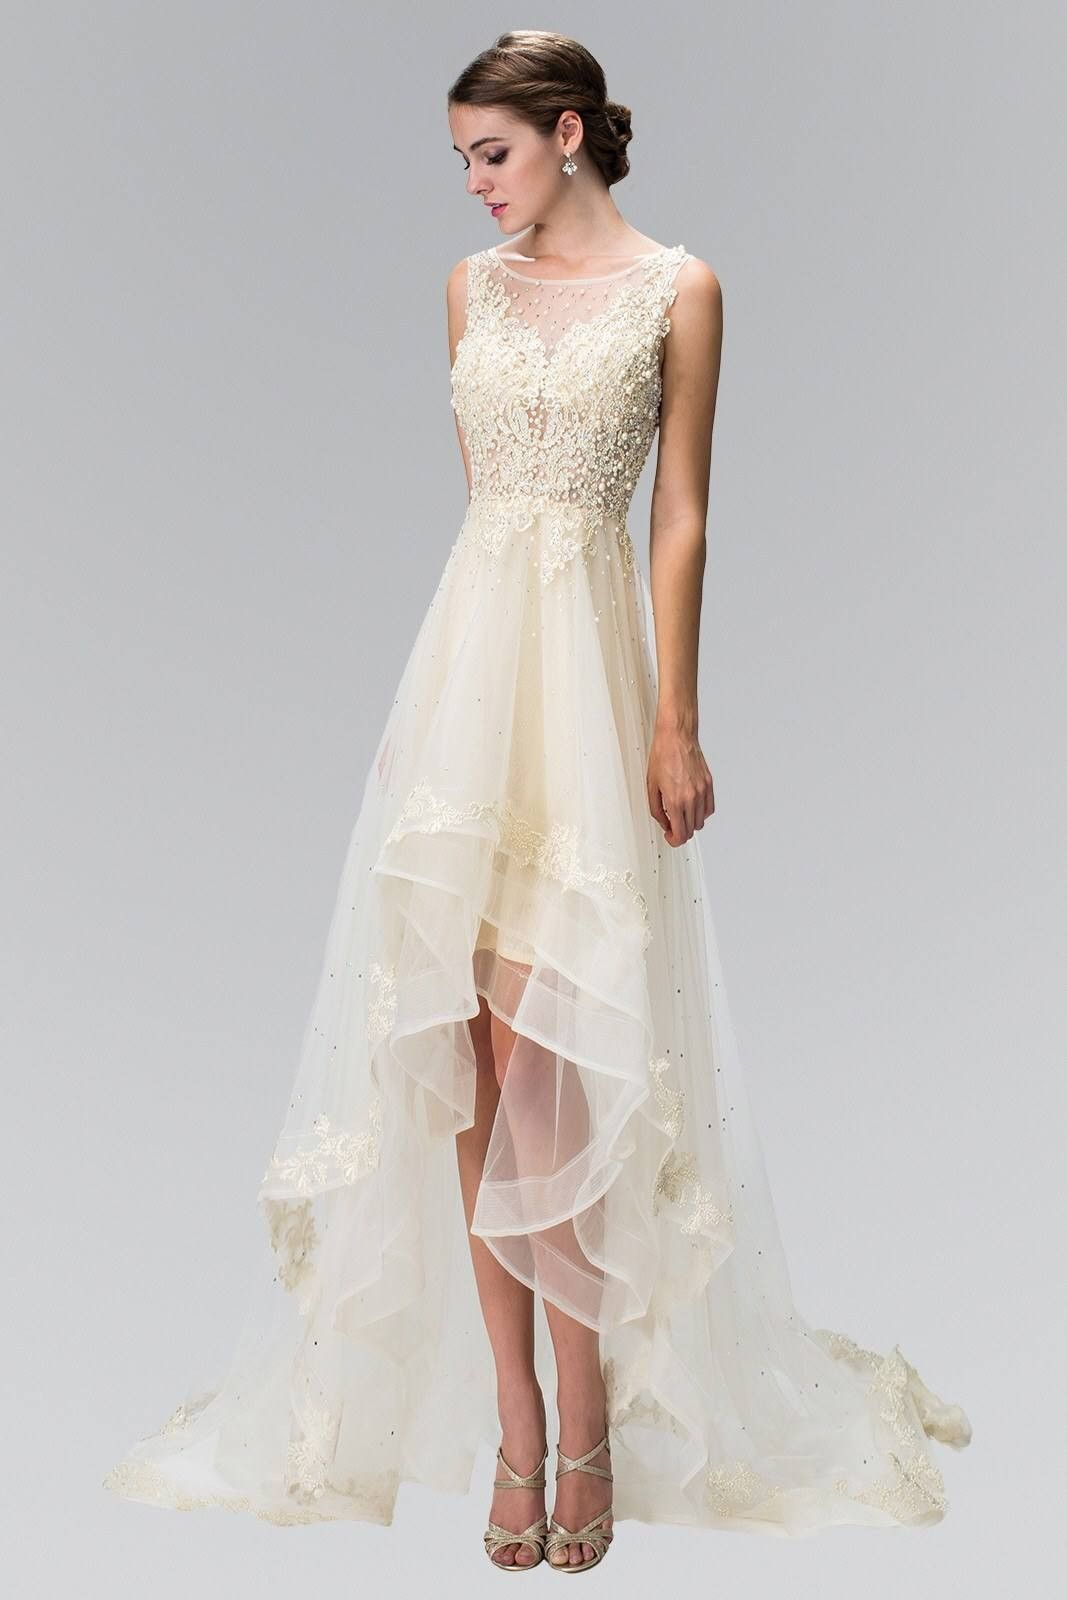 High and low wedding dress gl affordable wedding dress wedding